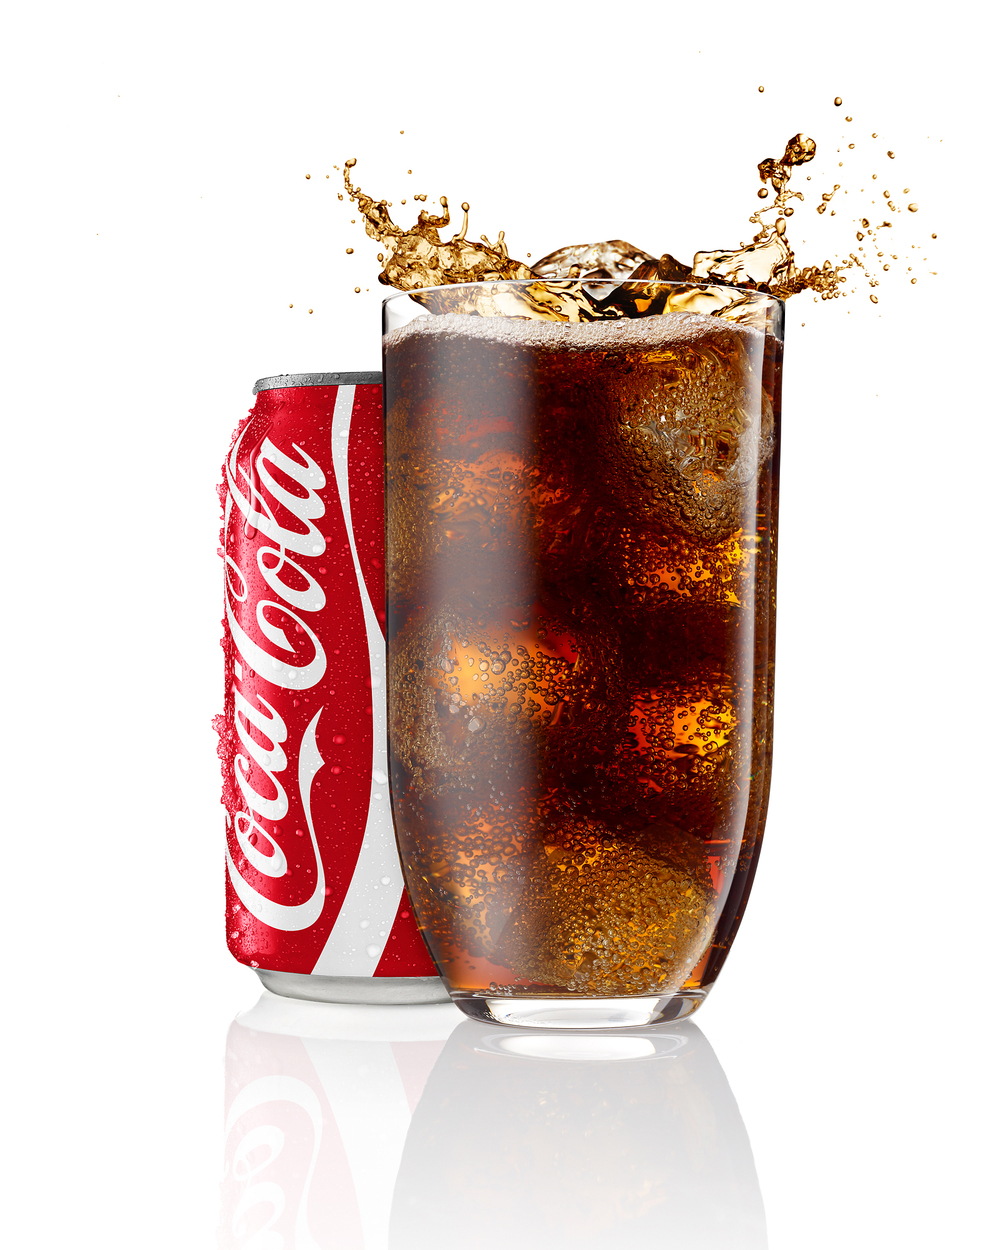 coke-splash.jpg